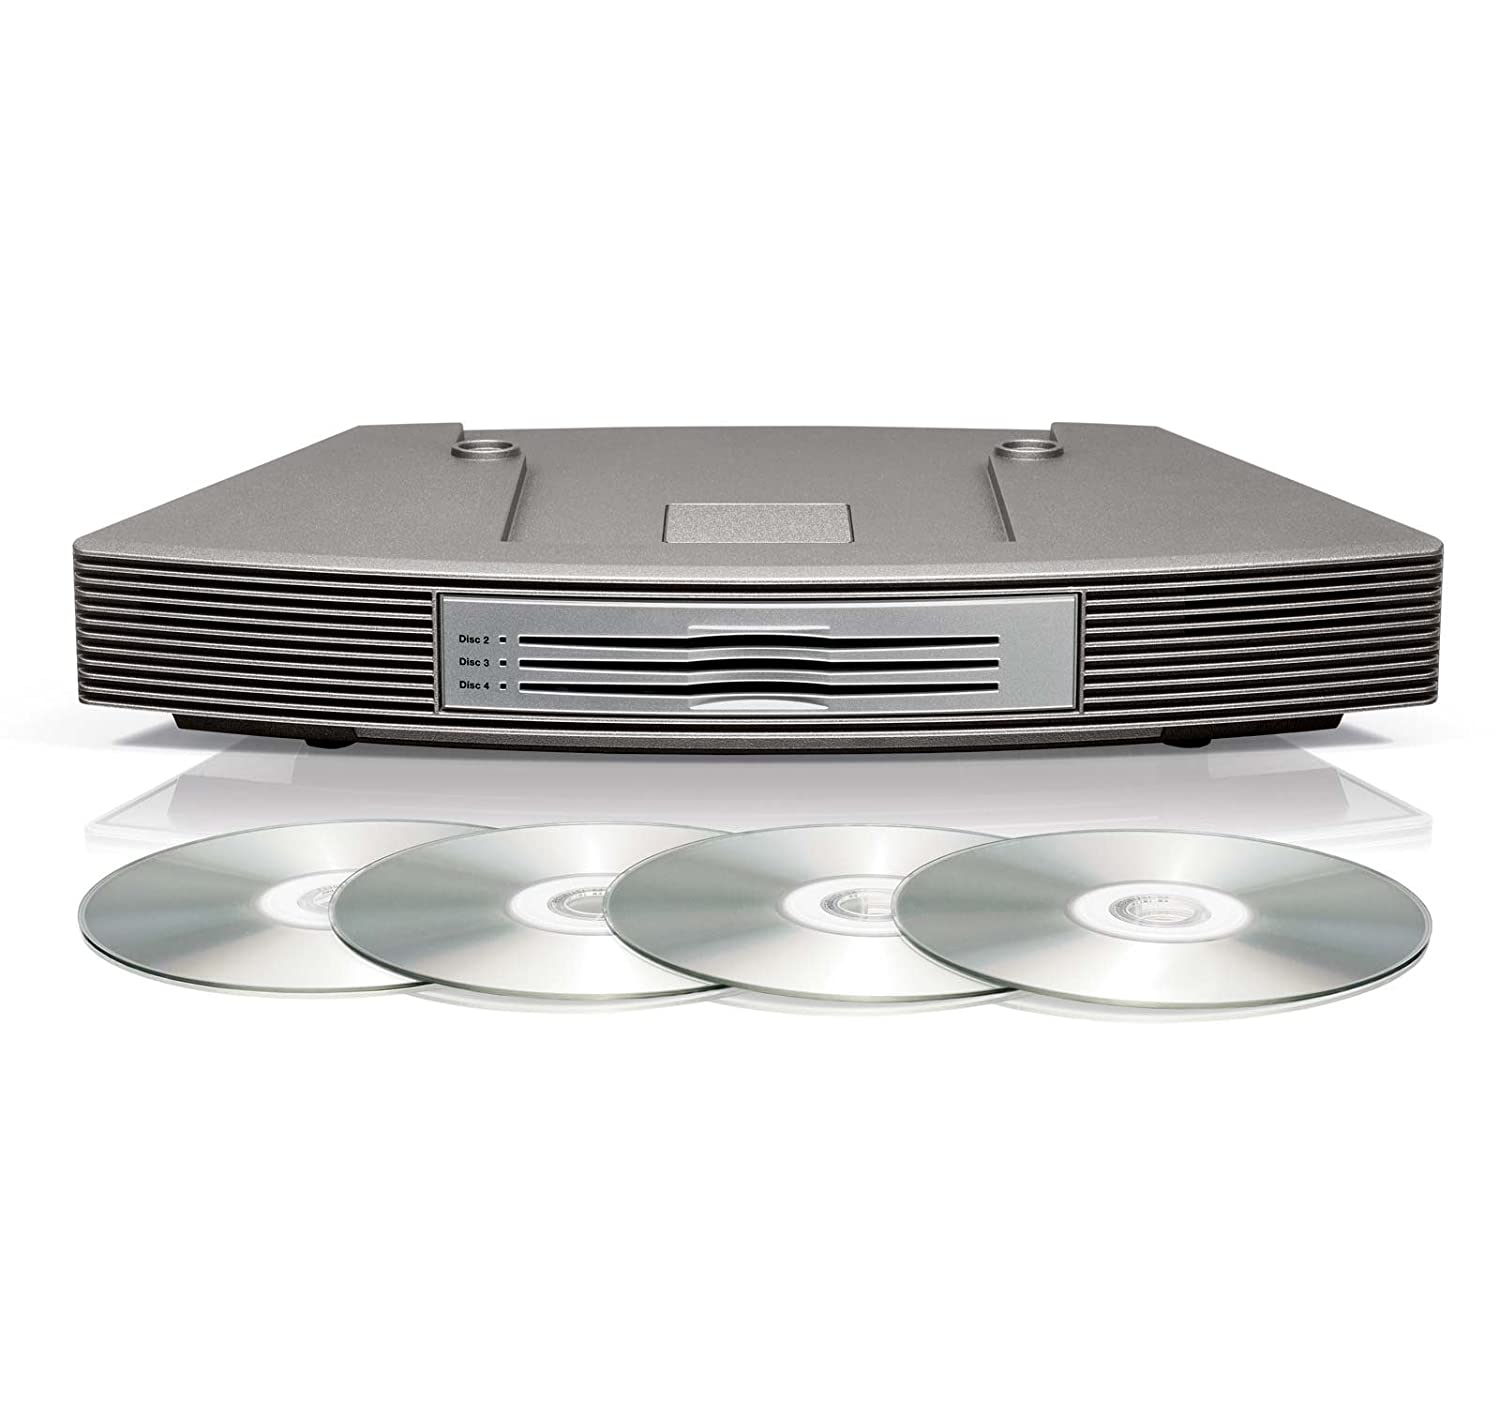 Bose Wave Multi-CD Changer, Titanium Silver (for Wave music system III)